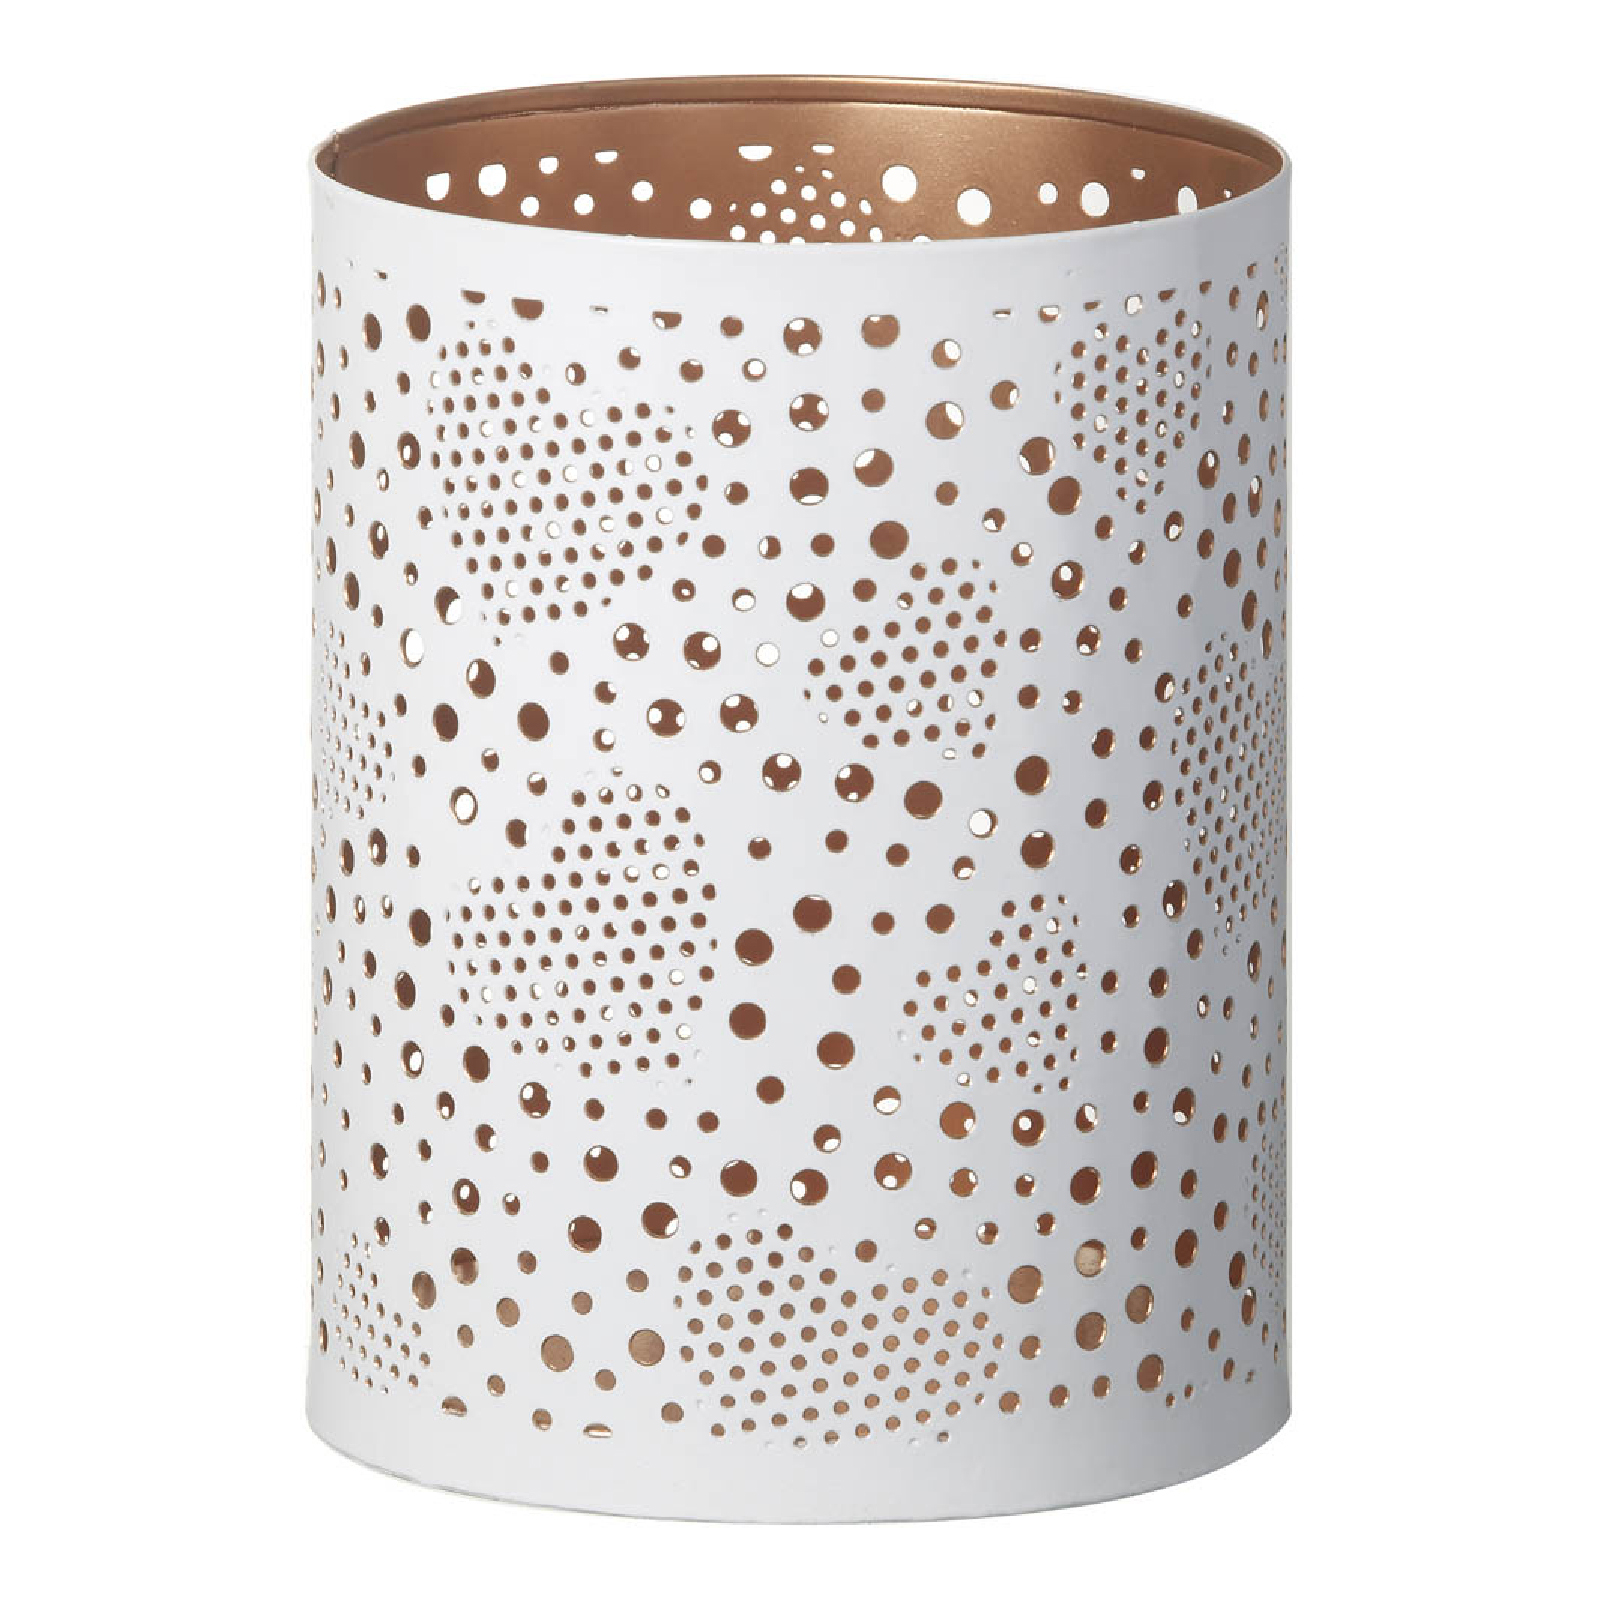 Parlane Zia Metal Candle Holder - White (12cm x 15.5cm)